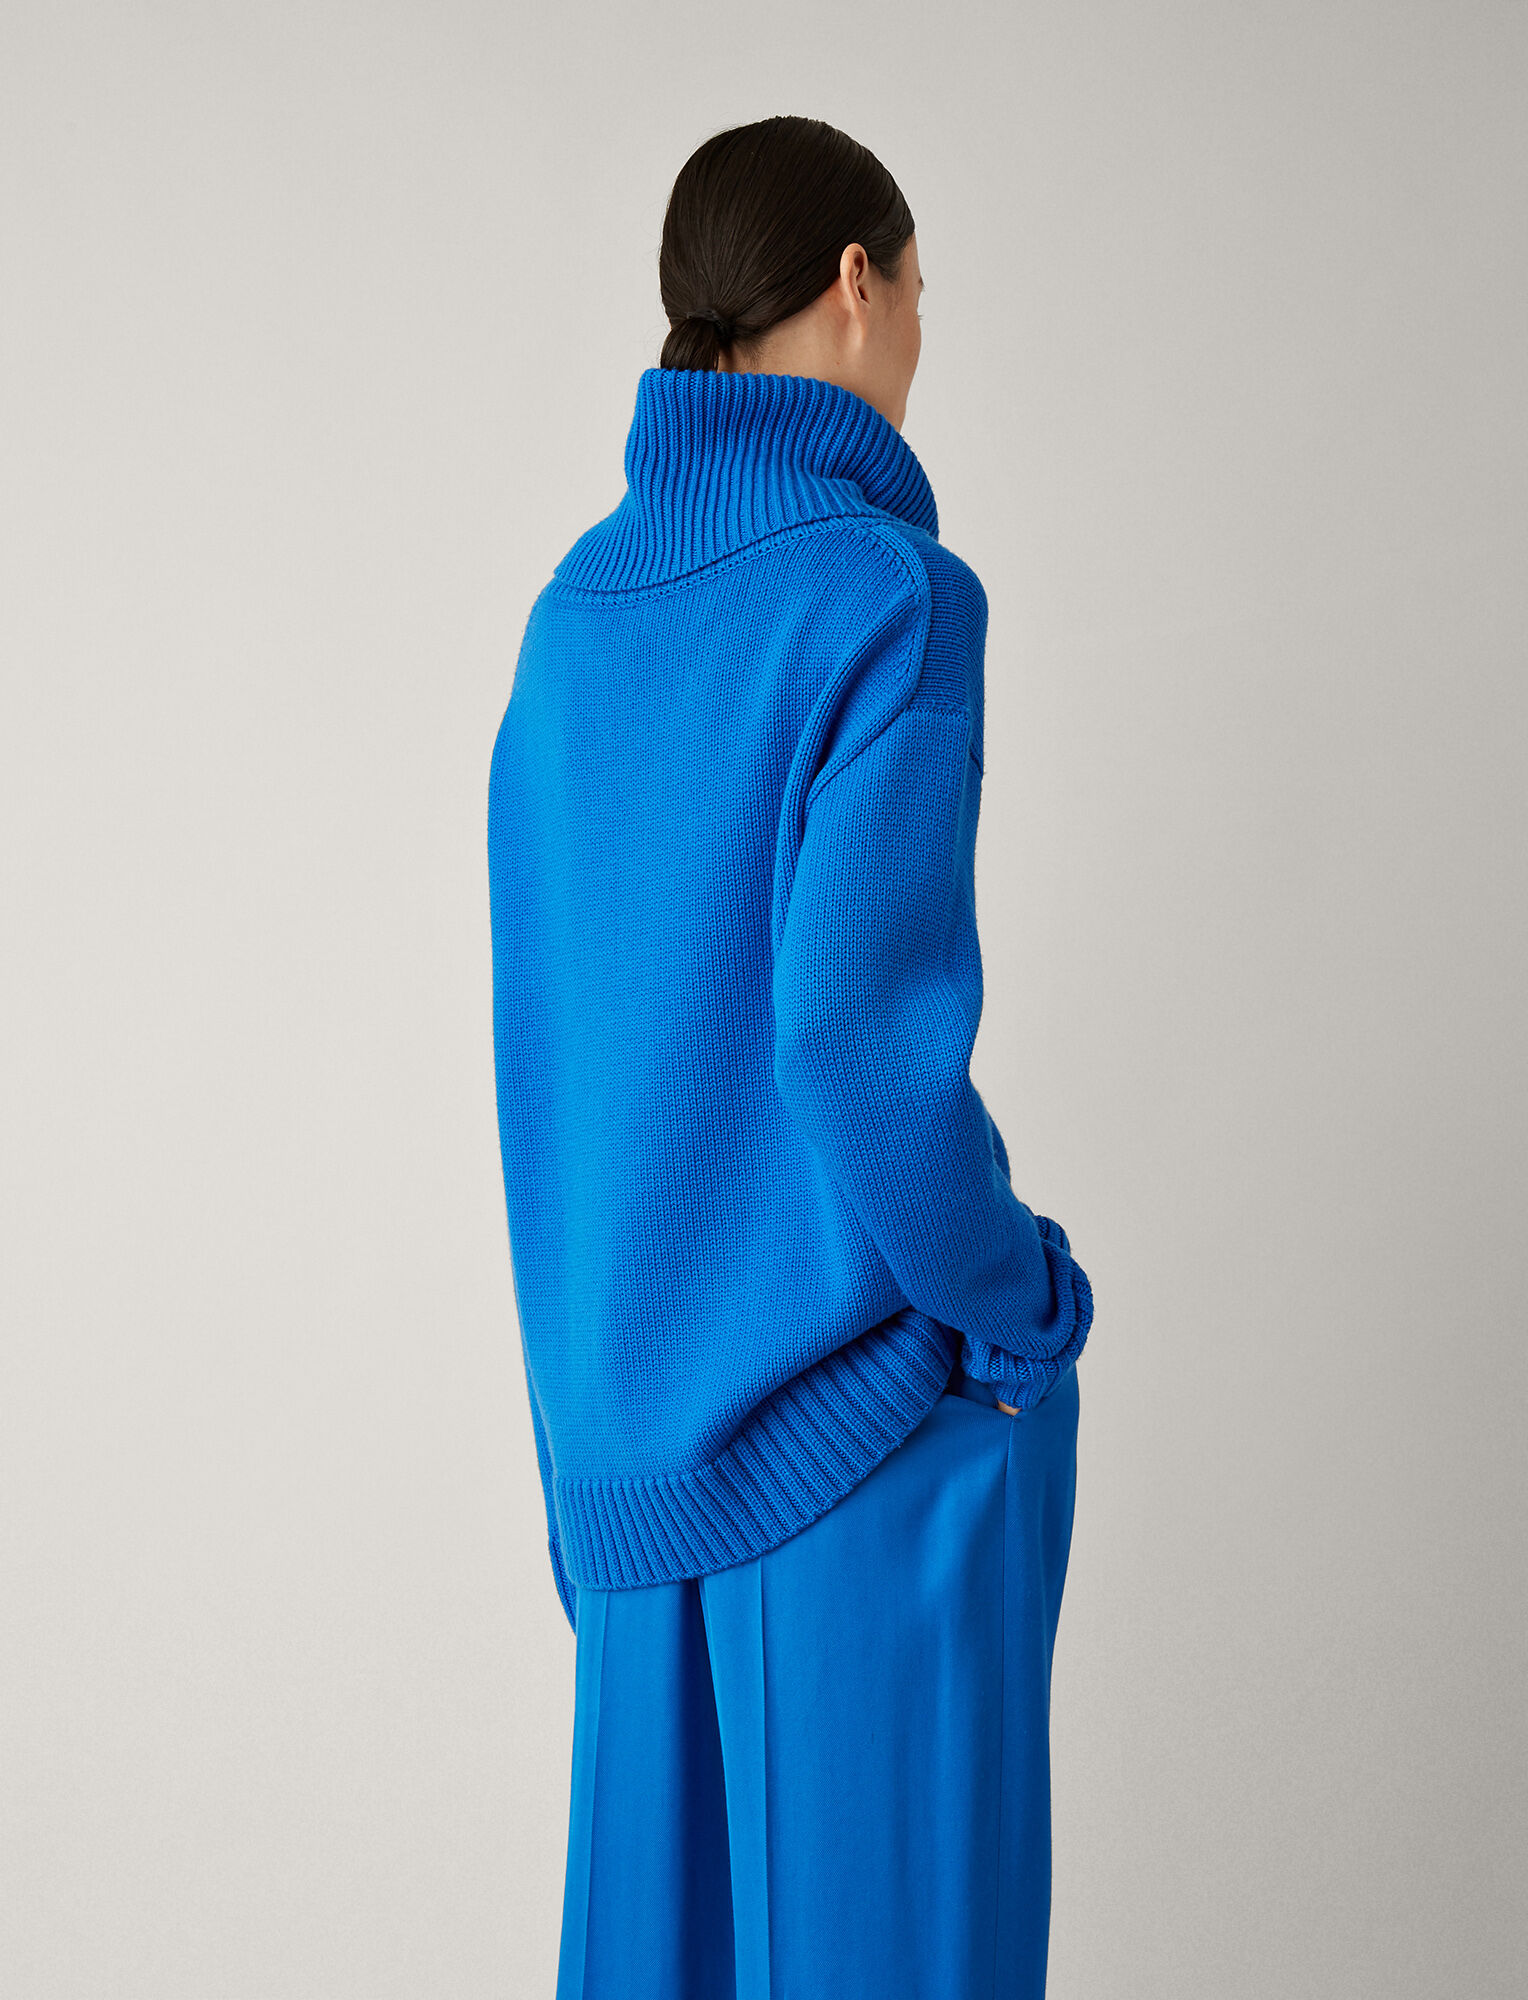 Joseph, Oversized Sloppy Joe Knit, in PLASTIC BLUE